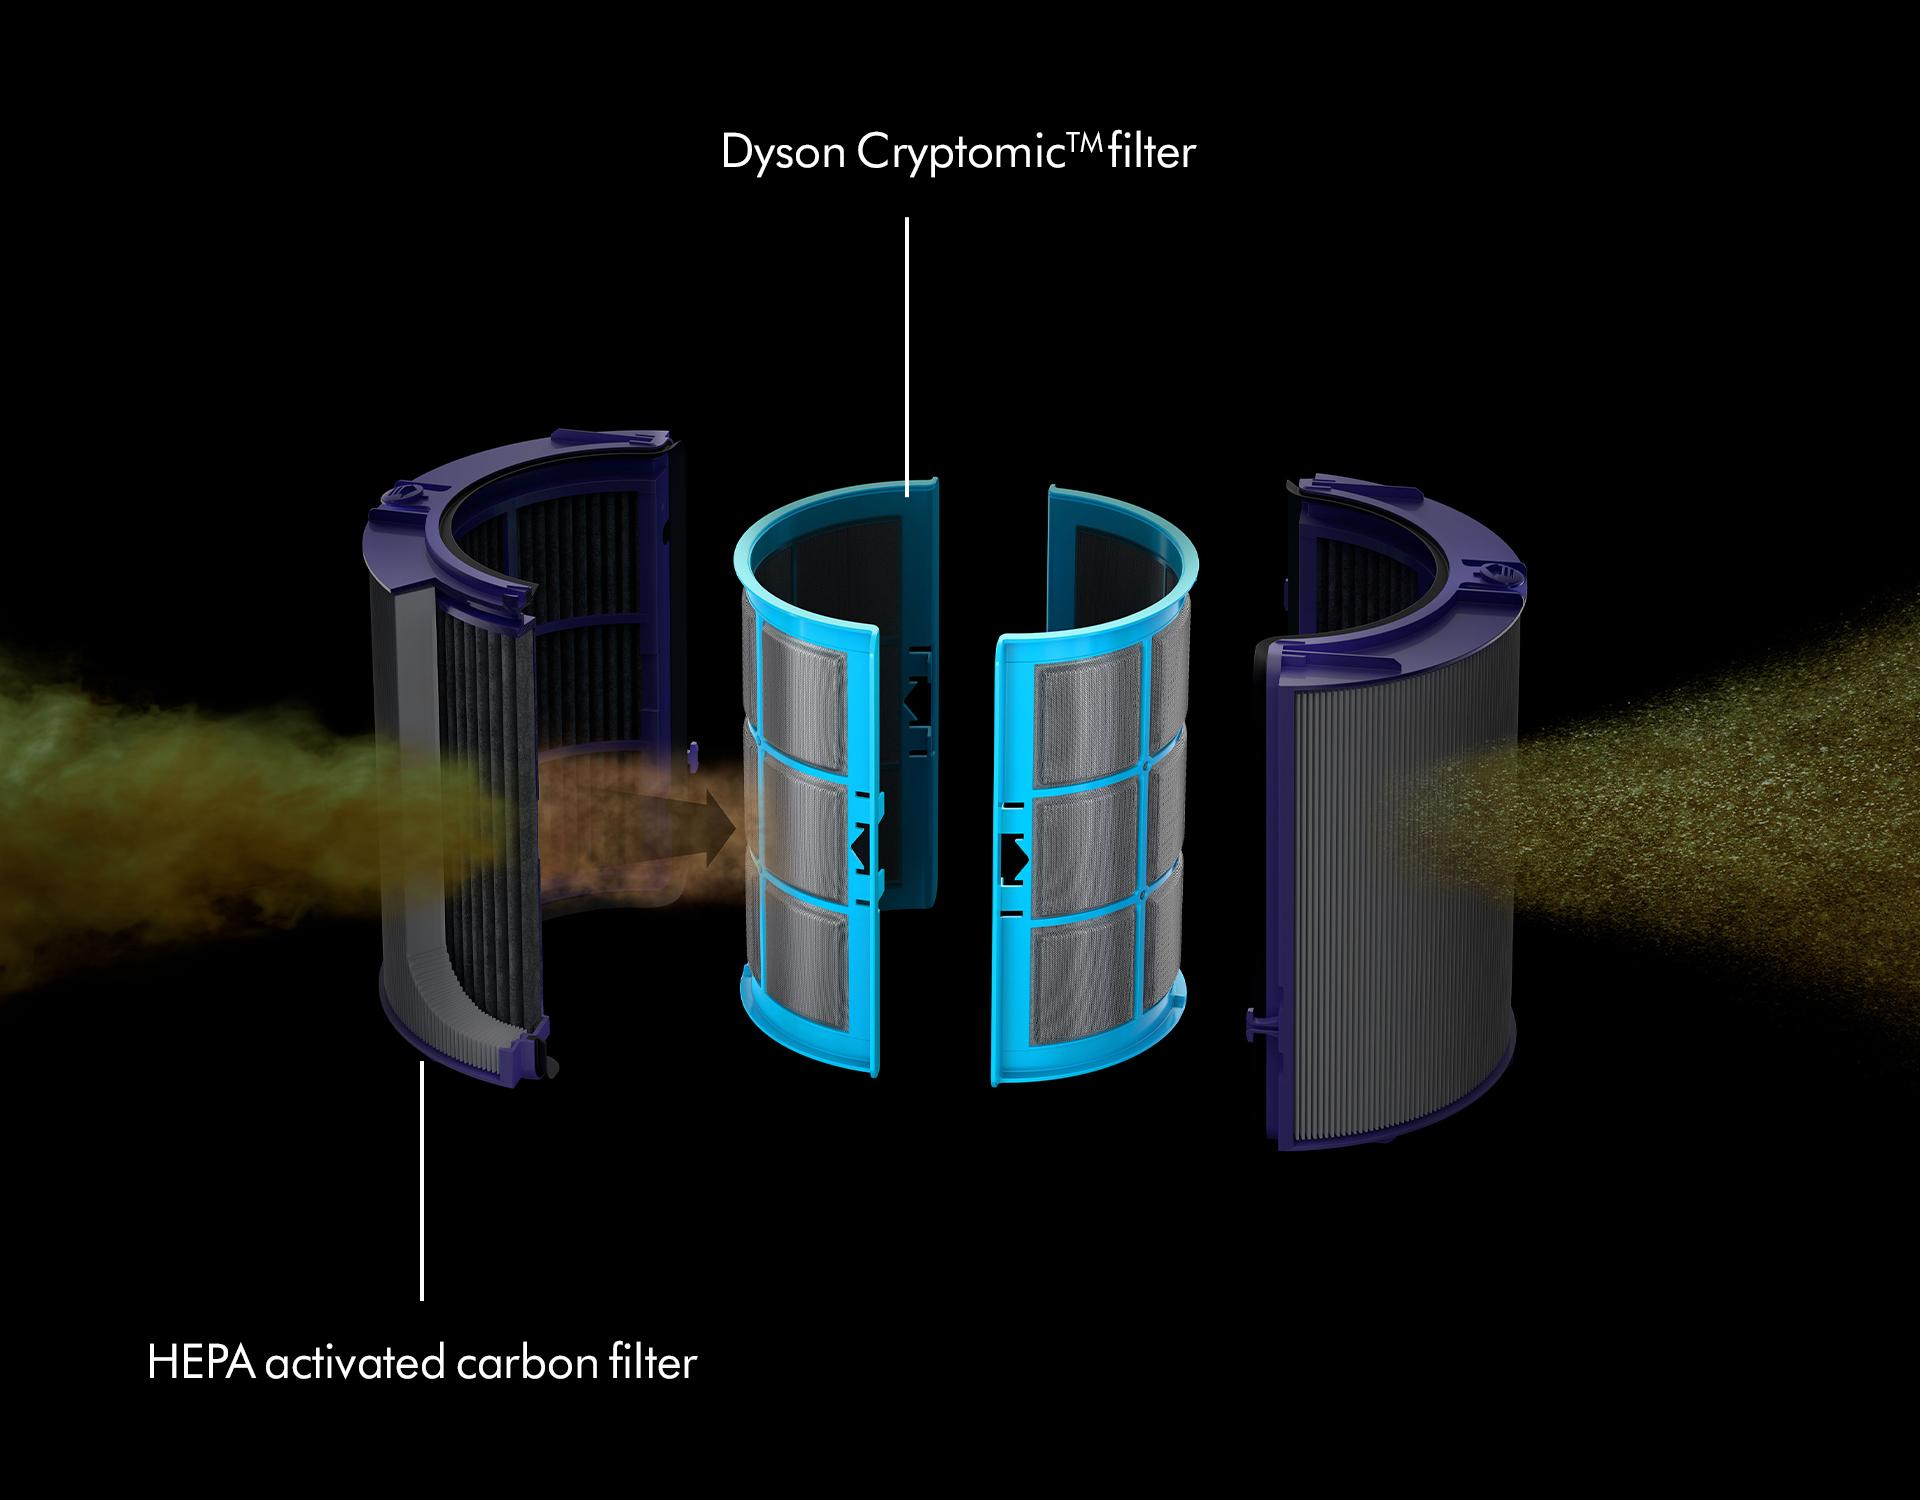 HEPA and carbon filters capture pollutants and gases